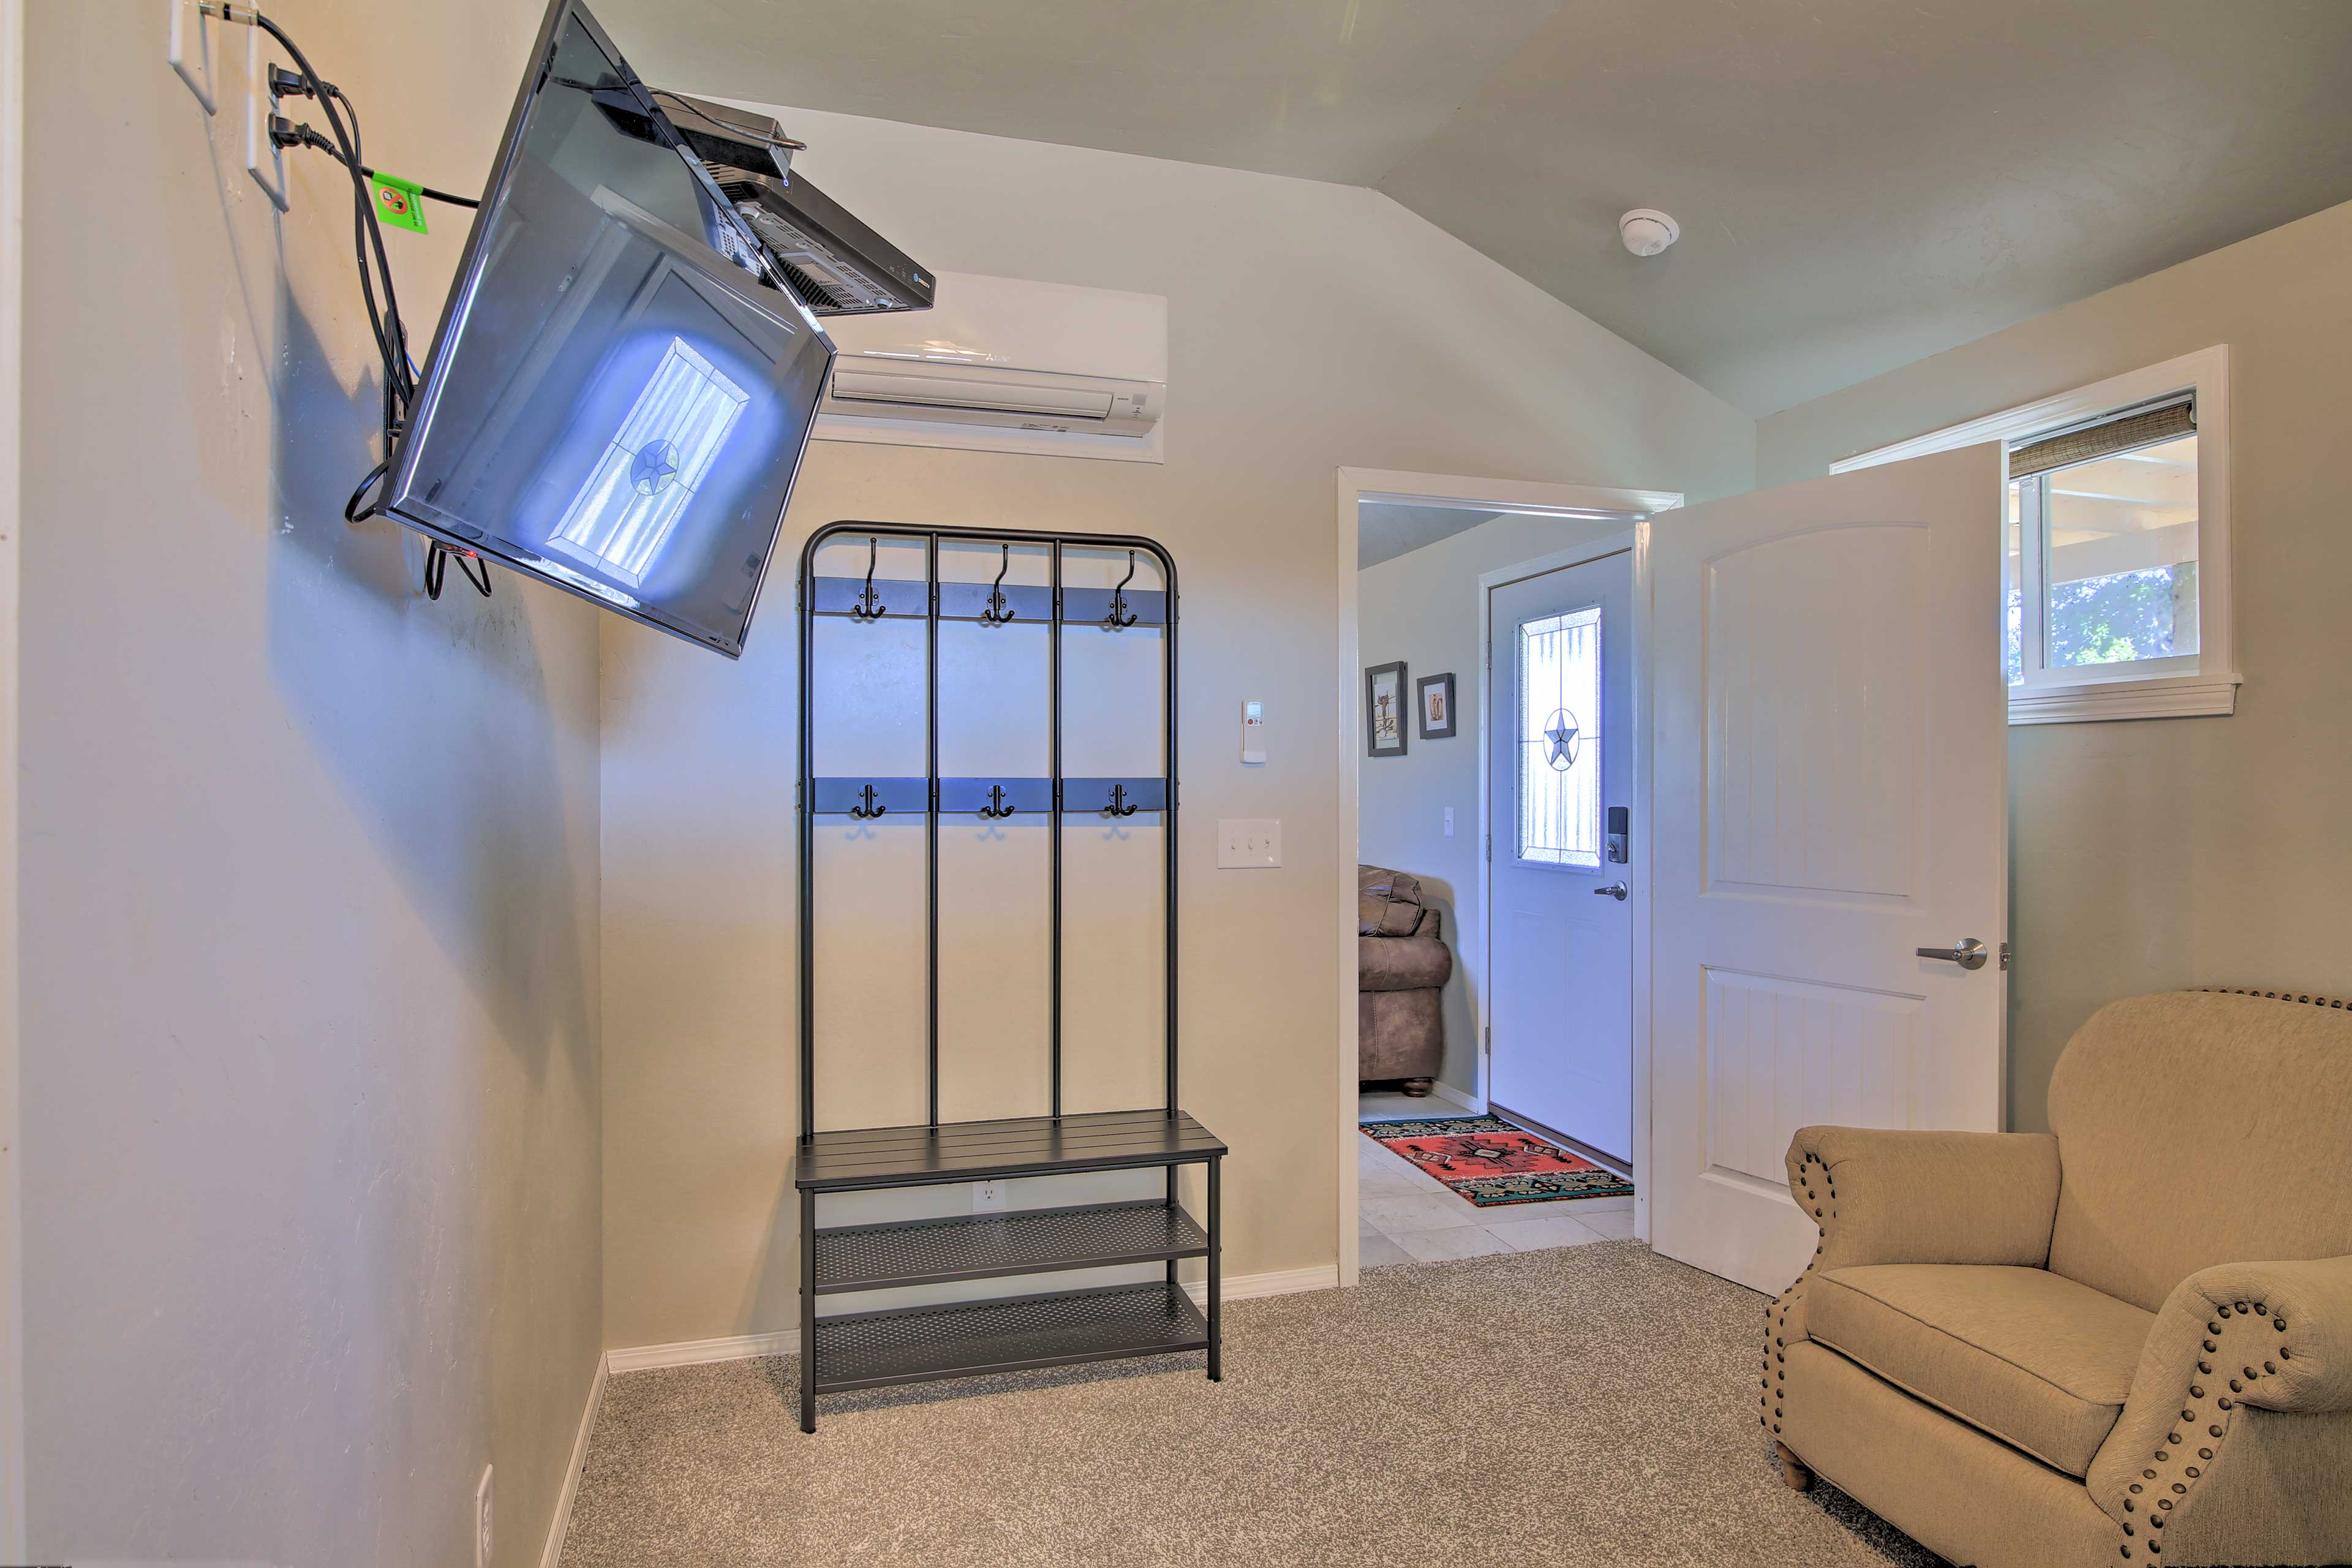 Keep your outfits stored below the remote-controlled A/C unit.